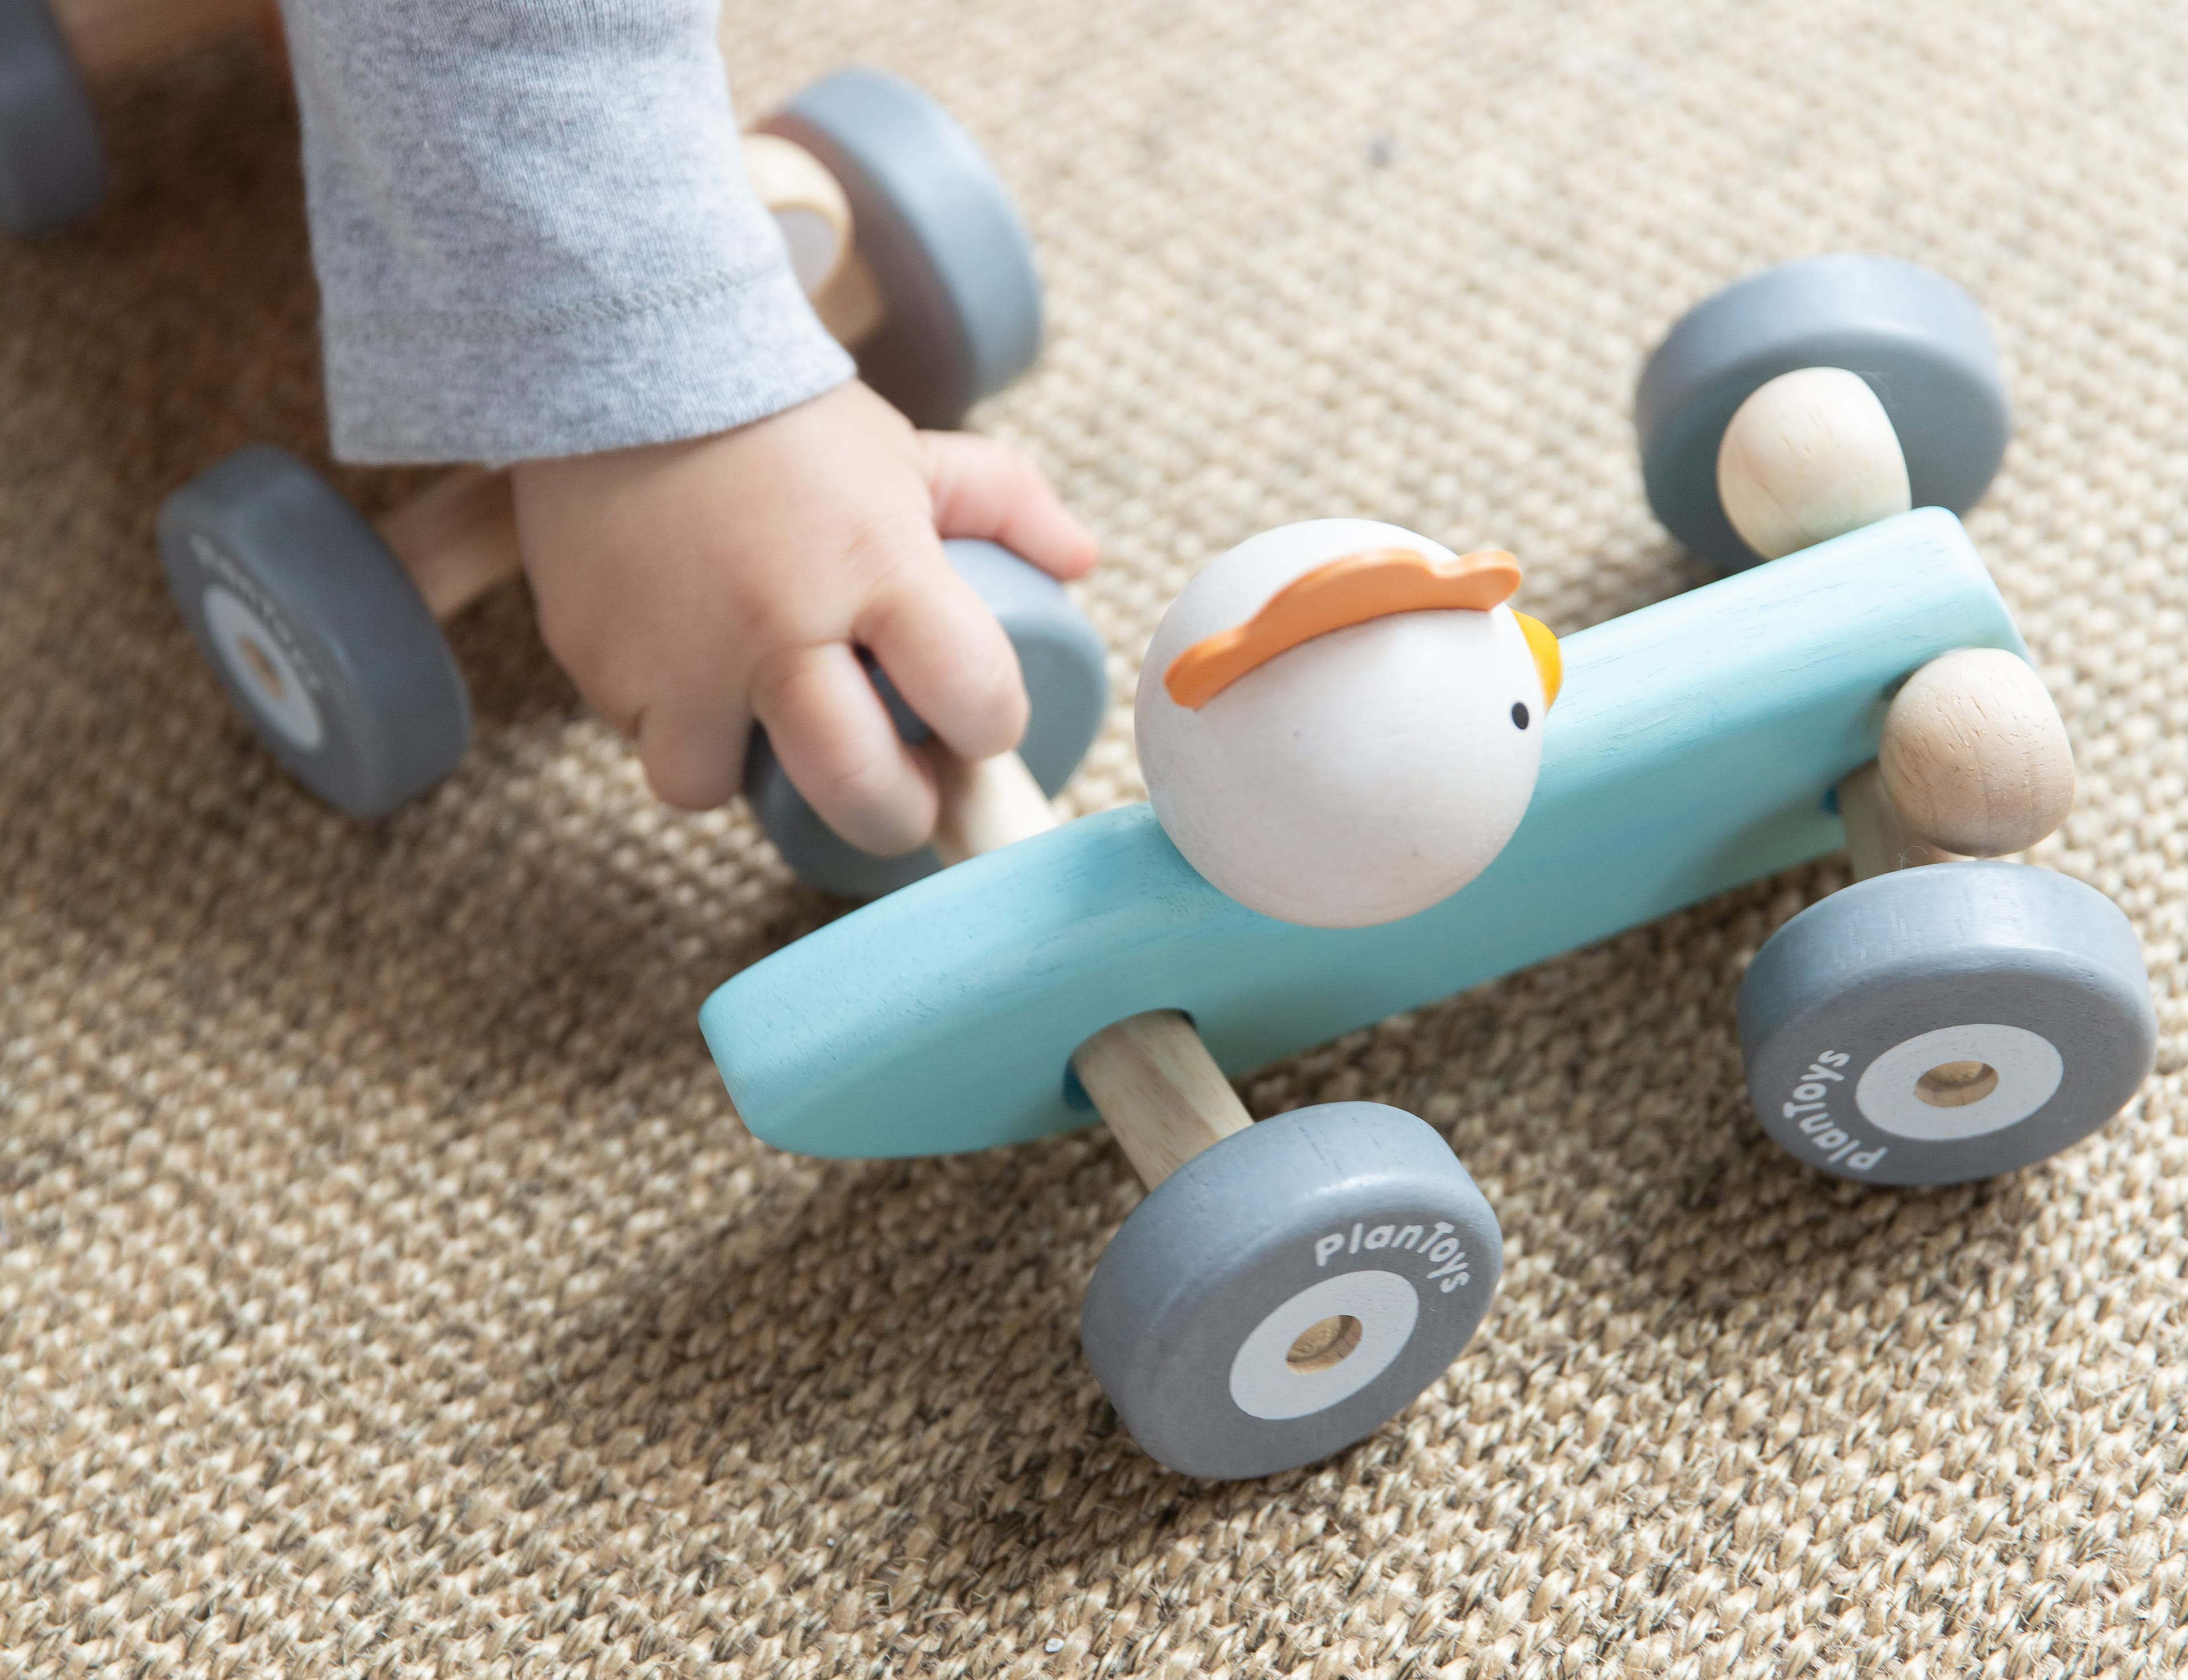 5716_PlanToys_CHICKEN_RACING_CAR_Active_Play_Imagination_Fine_Motor_Coordination_Language_and_Communications_12m_Wooden_toys_Education_toys_Safety_Toys_Non-toxic_2.jpg